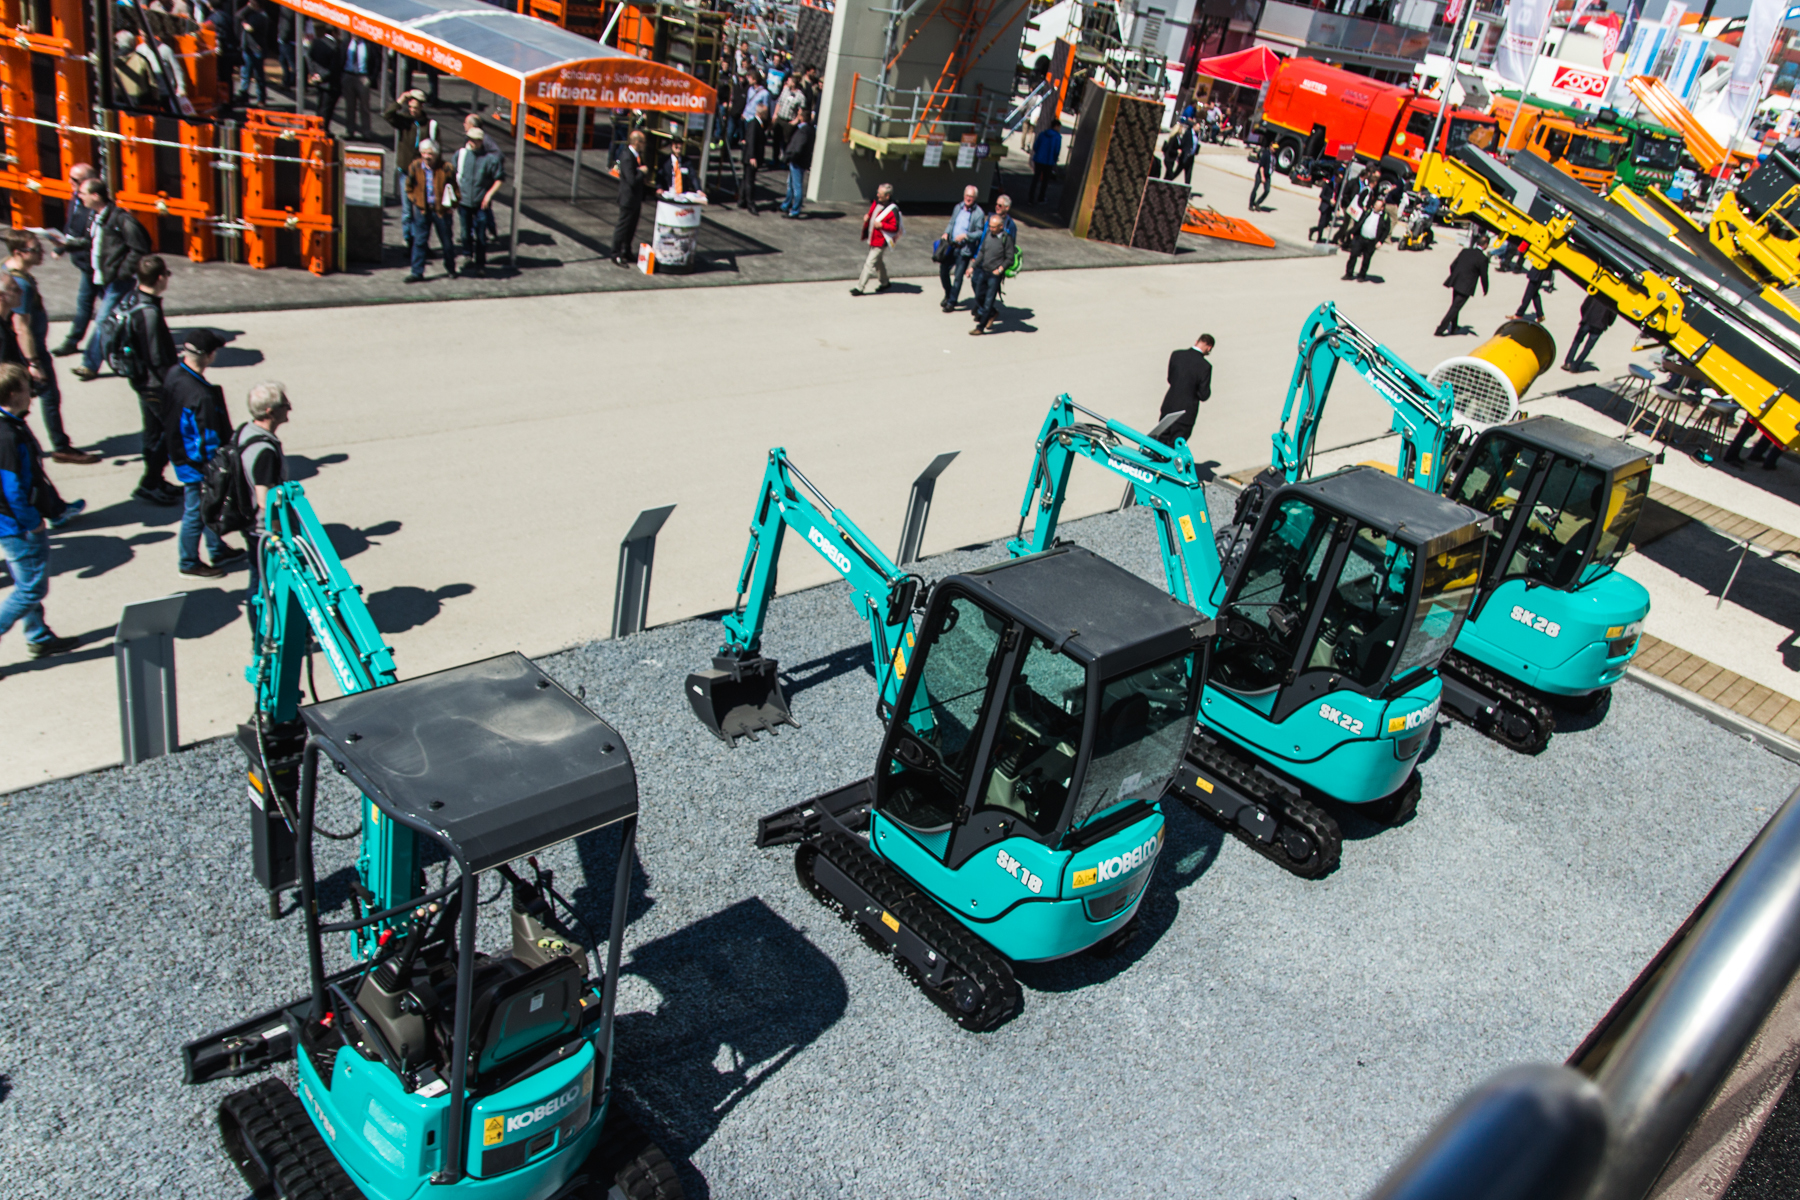 Kobelco compact excavators at Bauma 2016